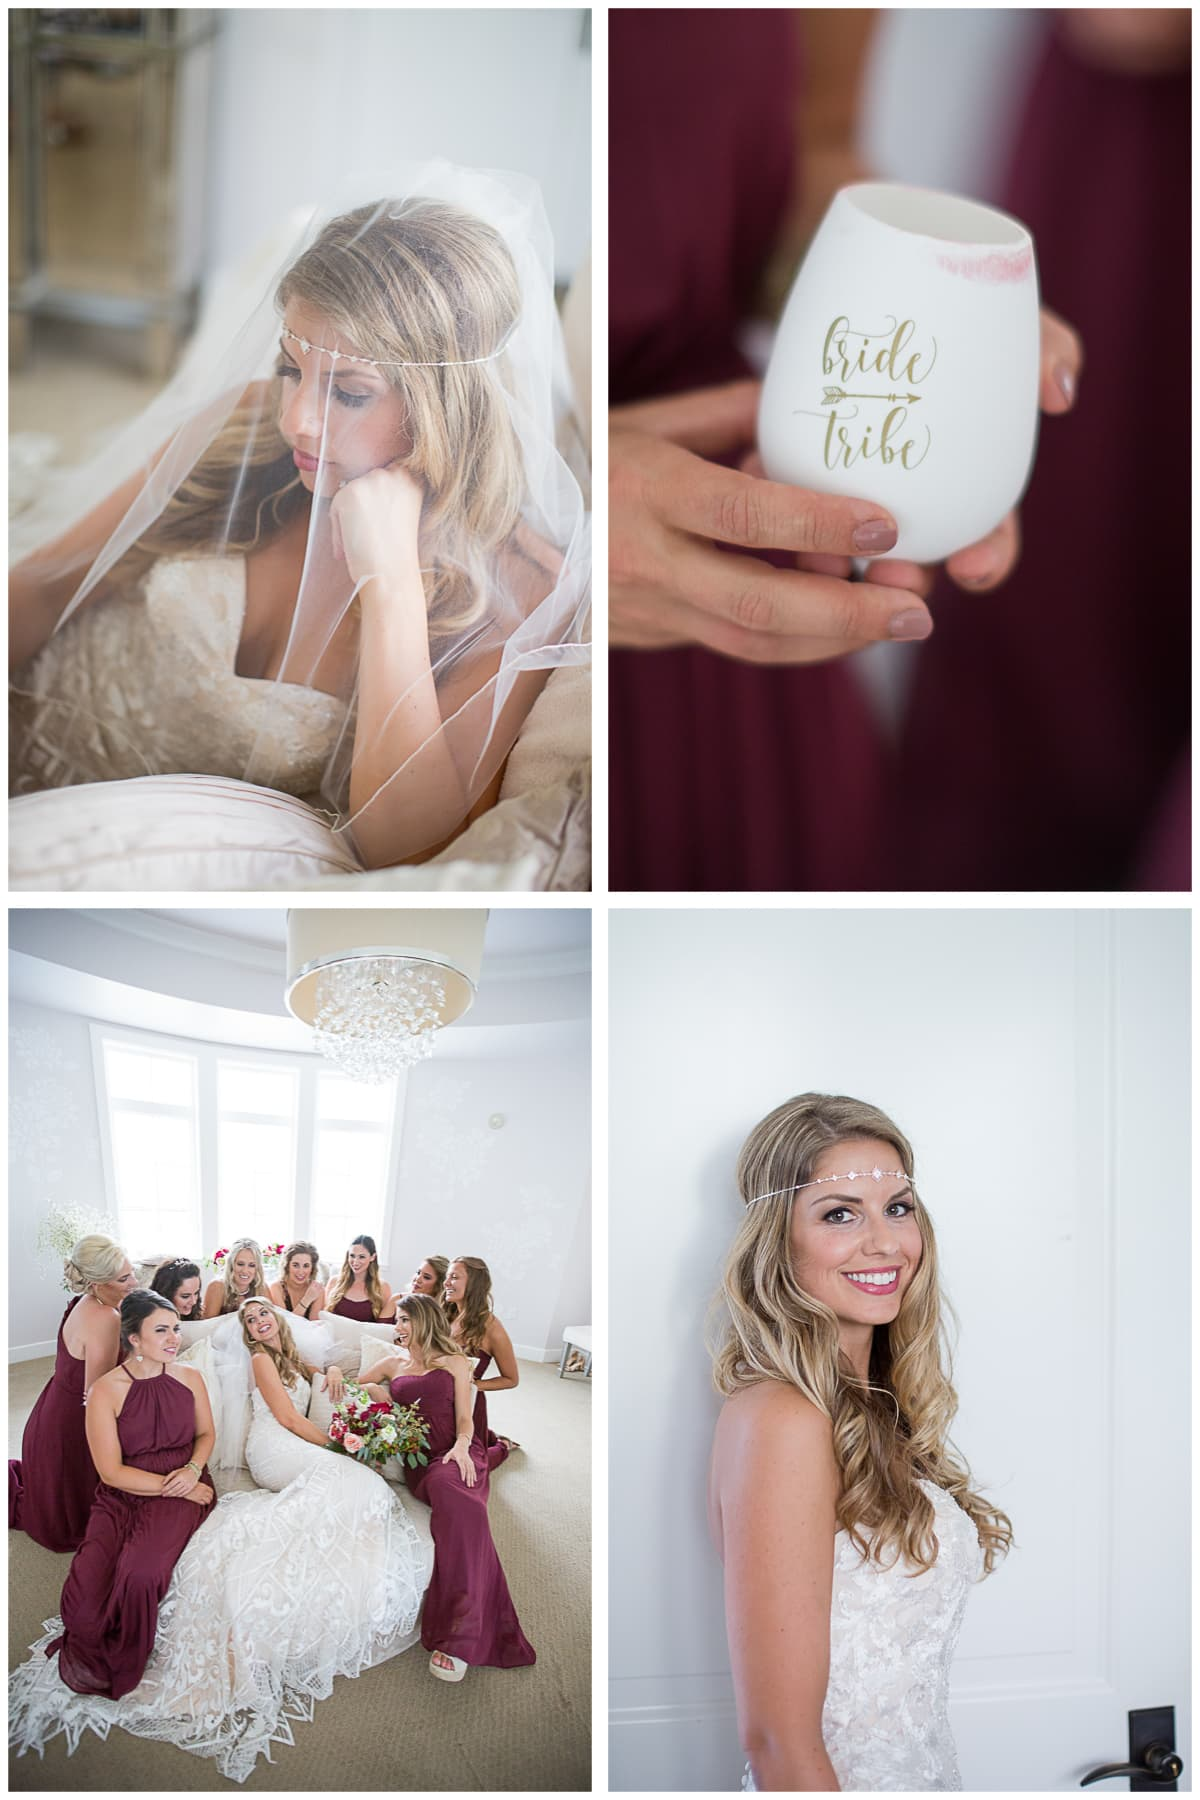 Sugar Beach Bridal suite photos